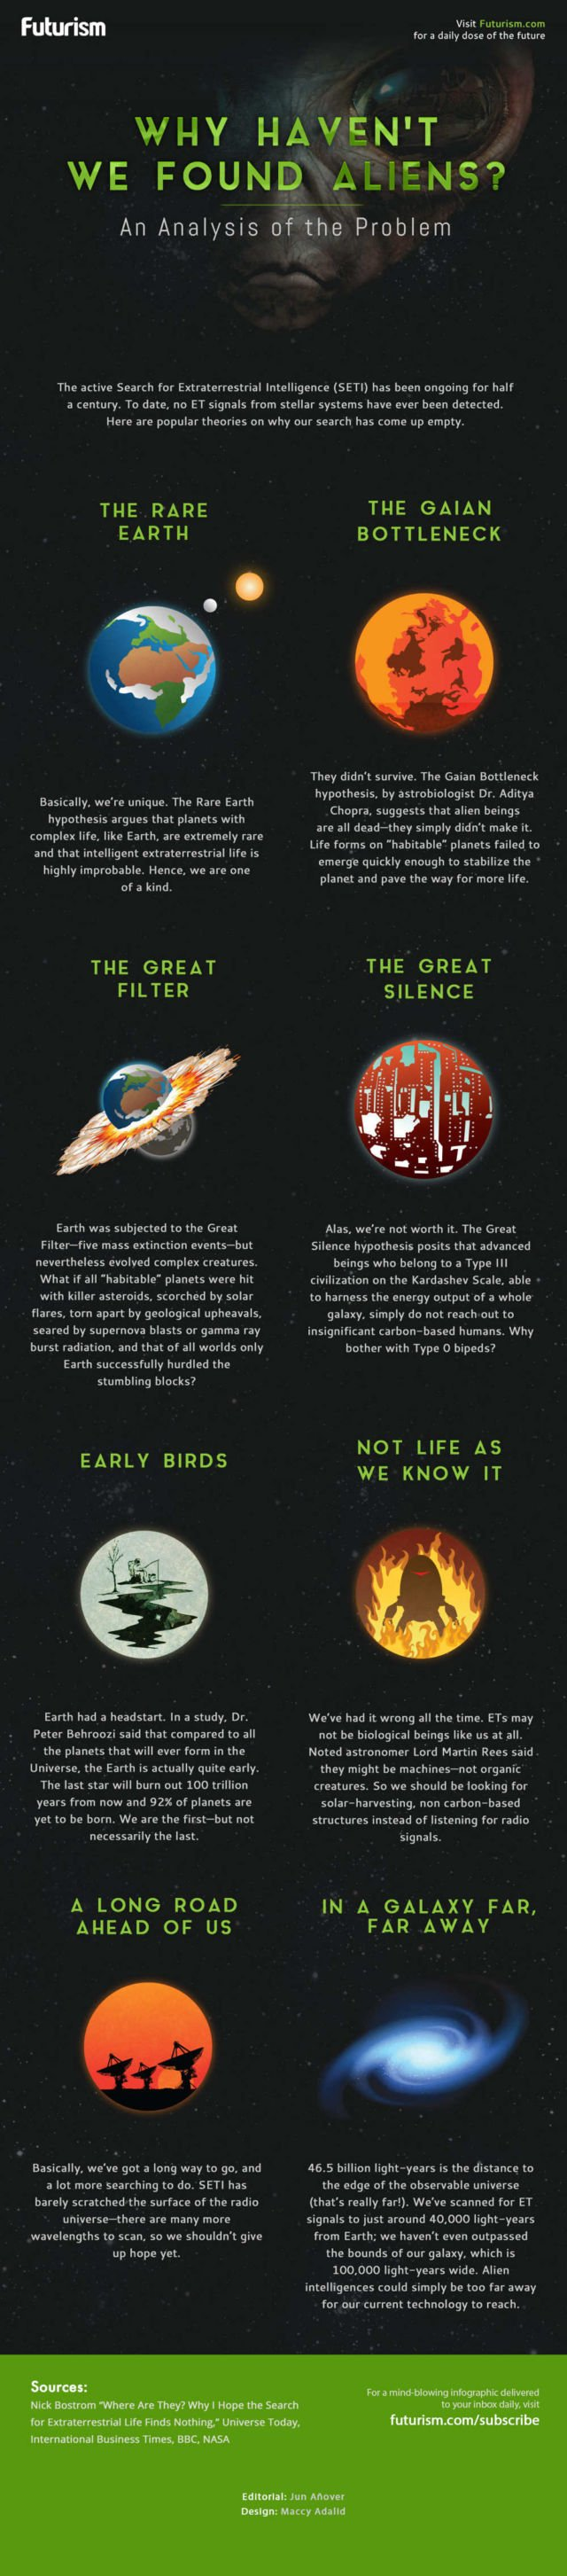 Why Haven't We Found Aliens - infographic